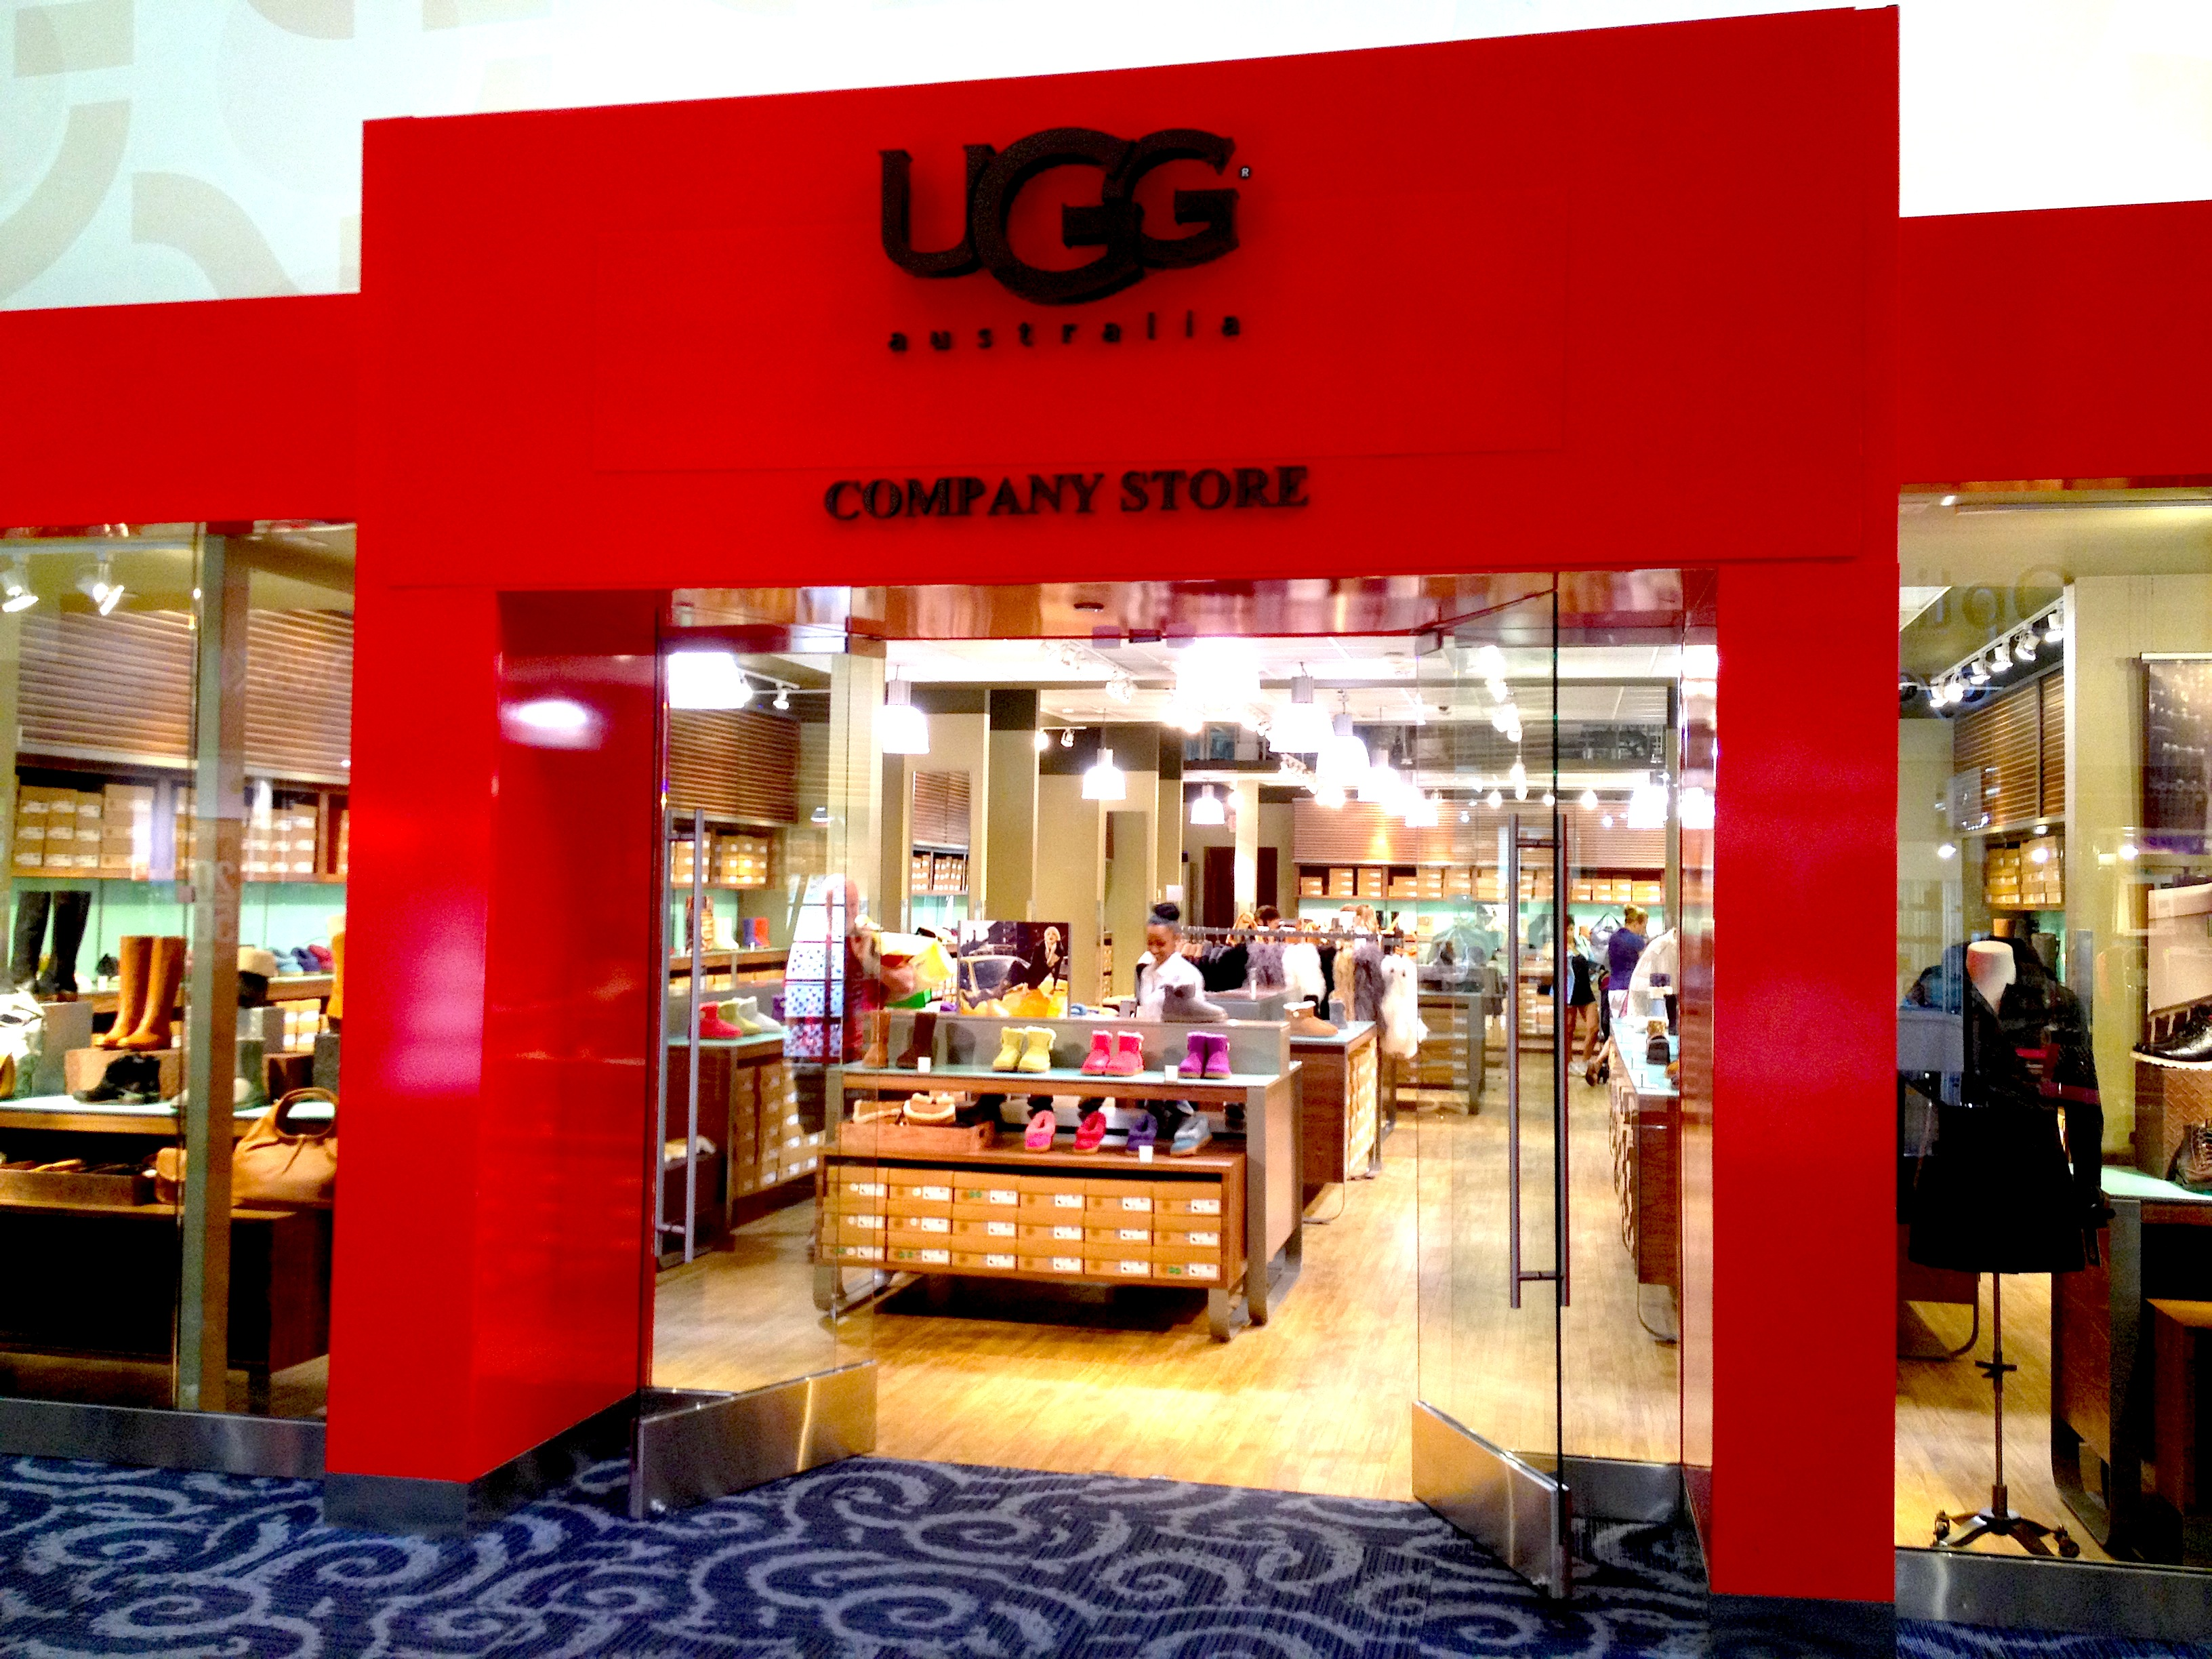 a4cc373c039 Ugg Australia Concept Store San Francisco - cheap watches mgc-gas.com